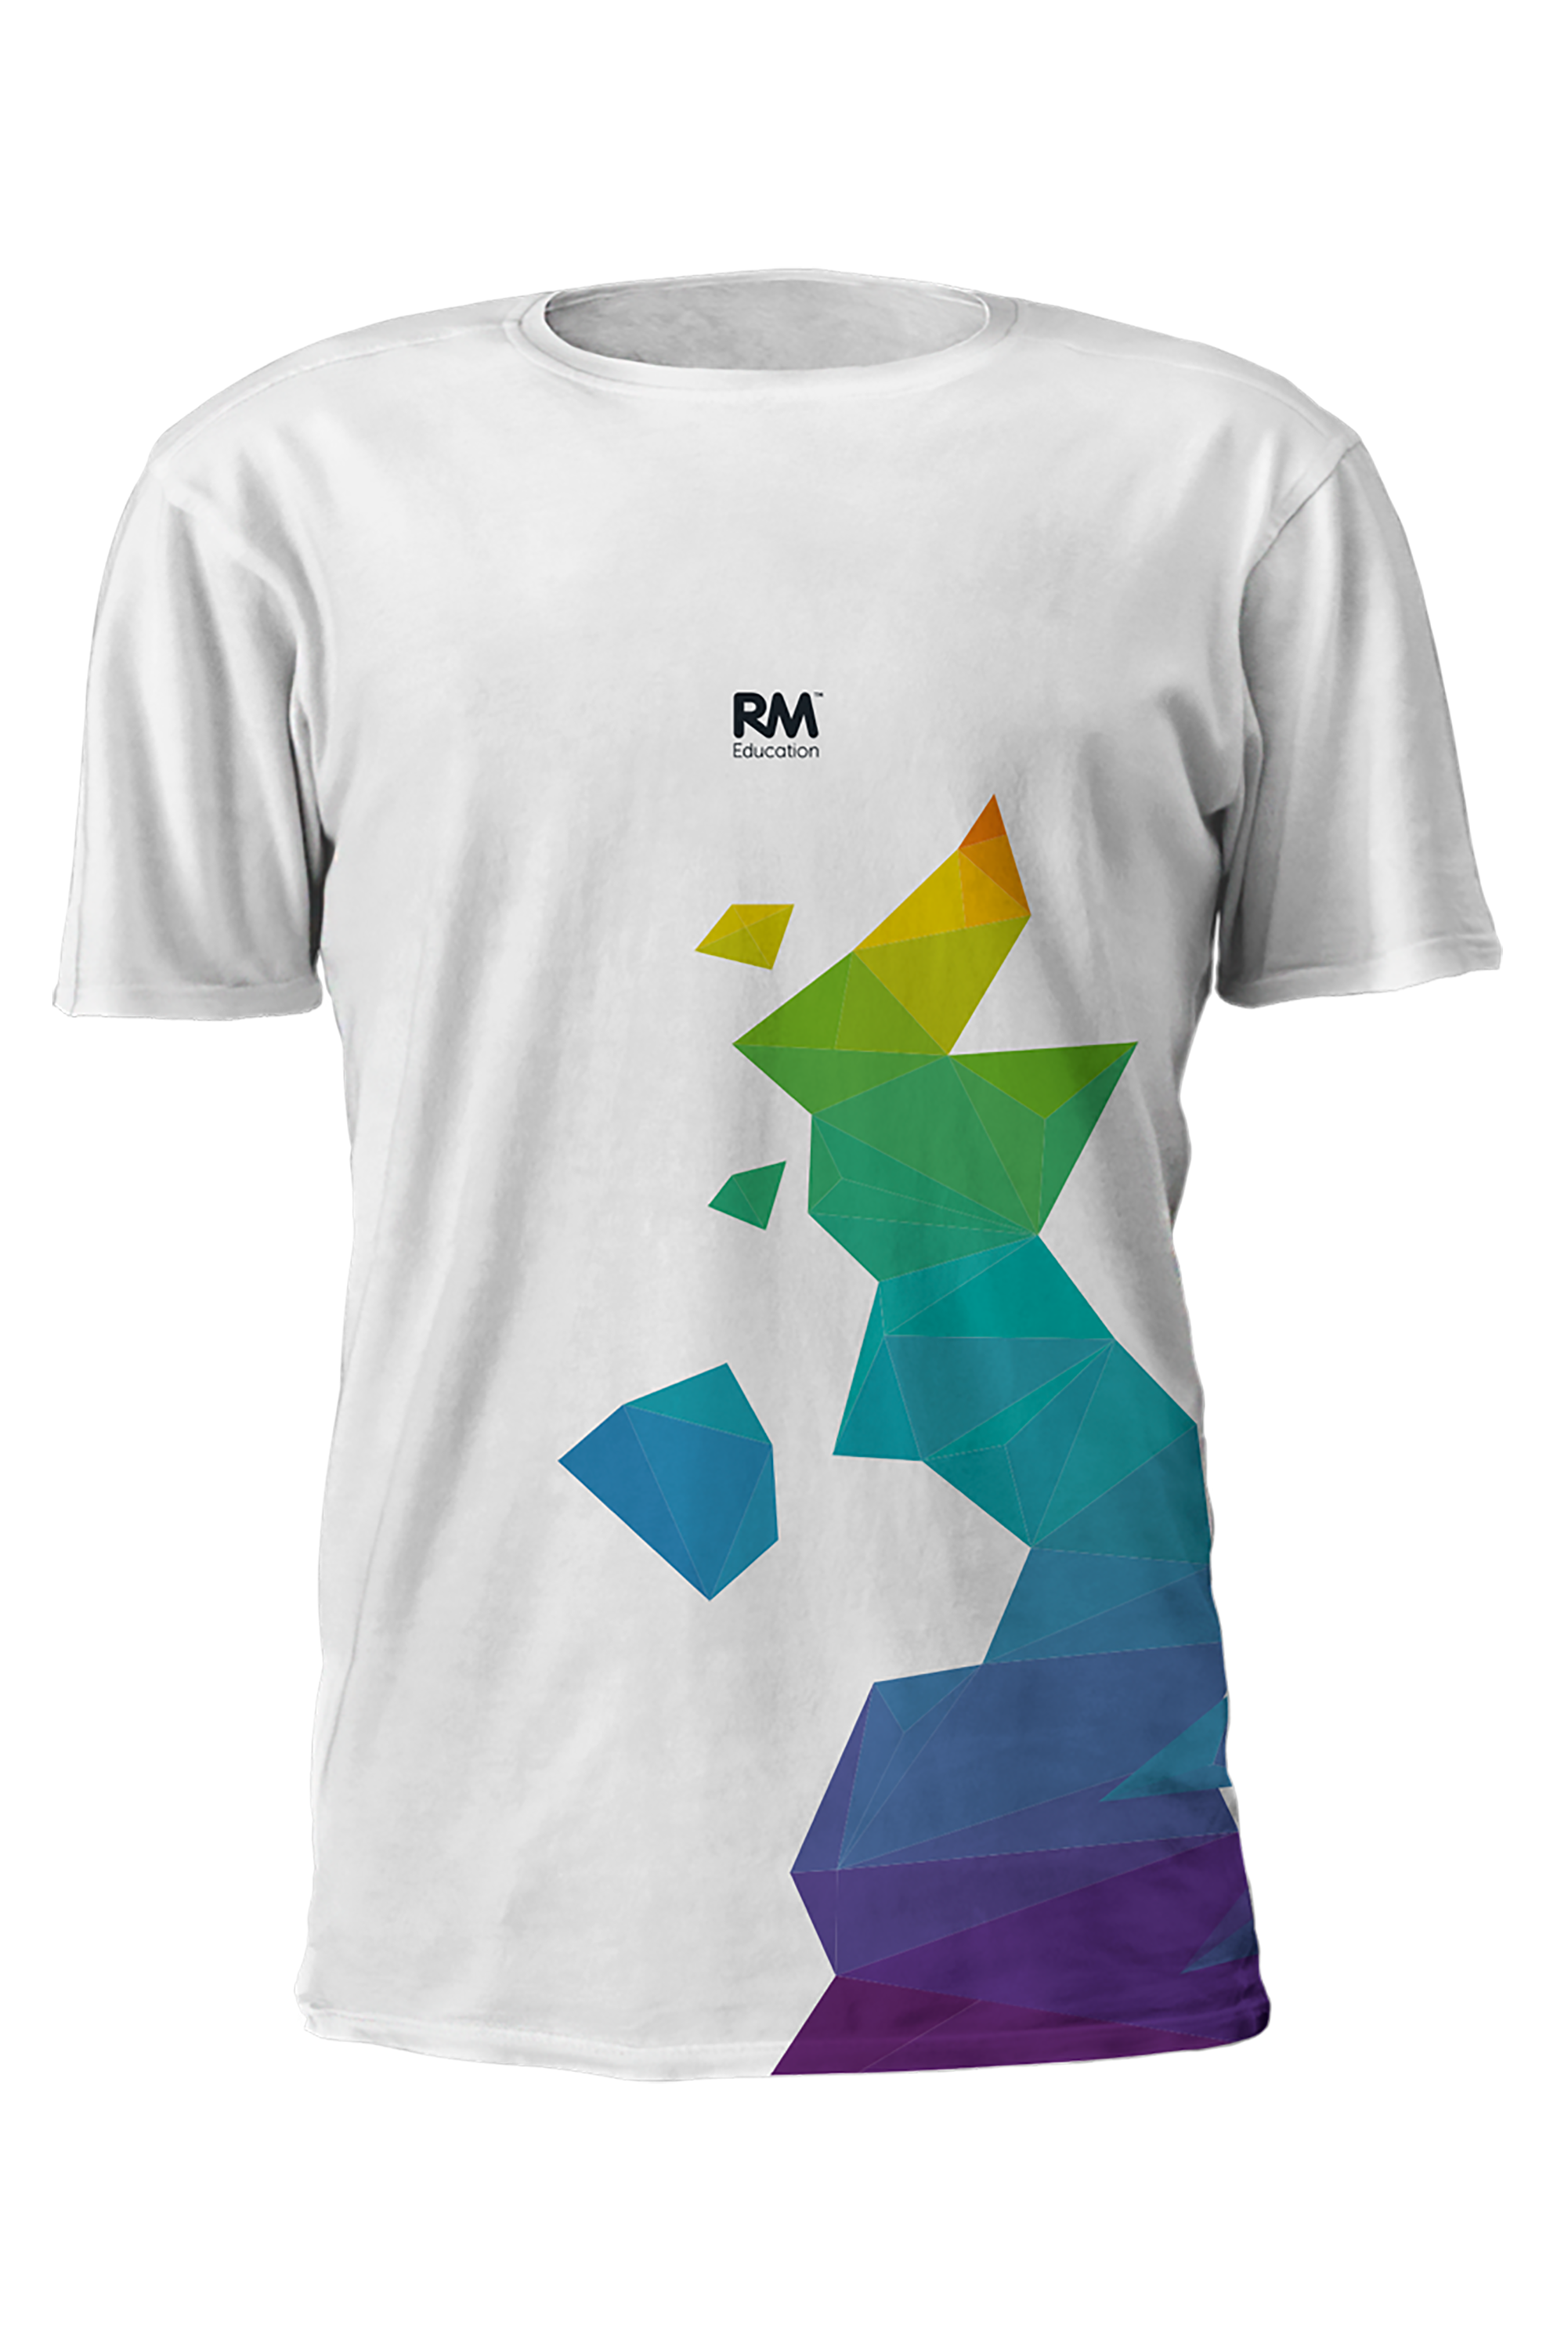 white tshirt front view with colourful graphic of map of UK and RM Education logo